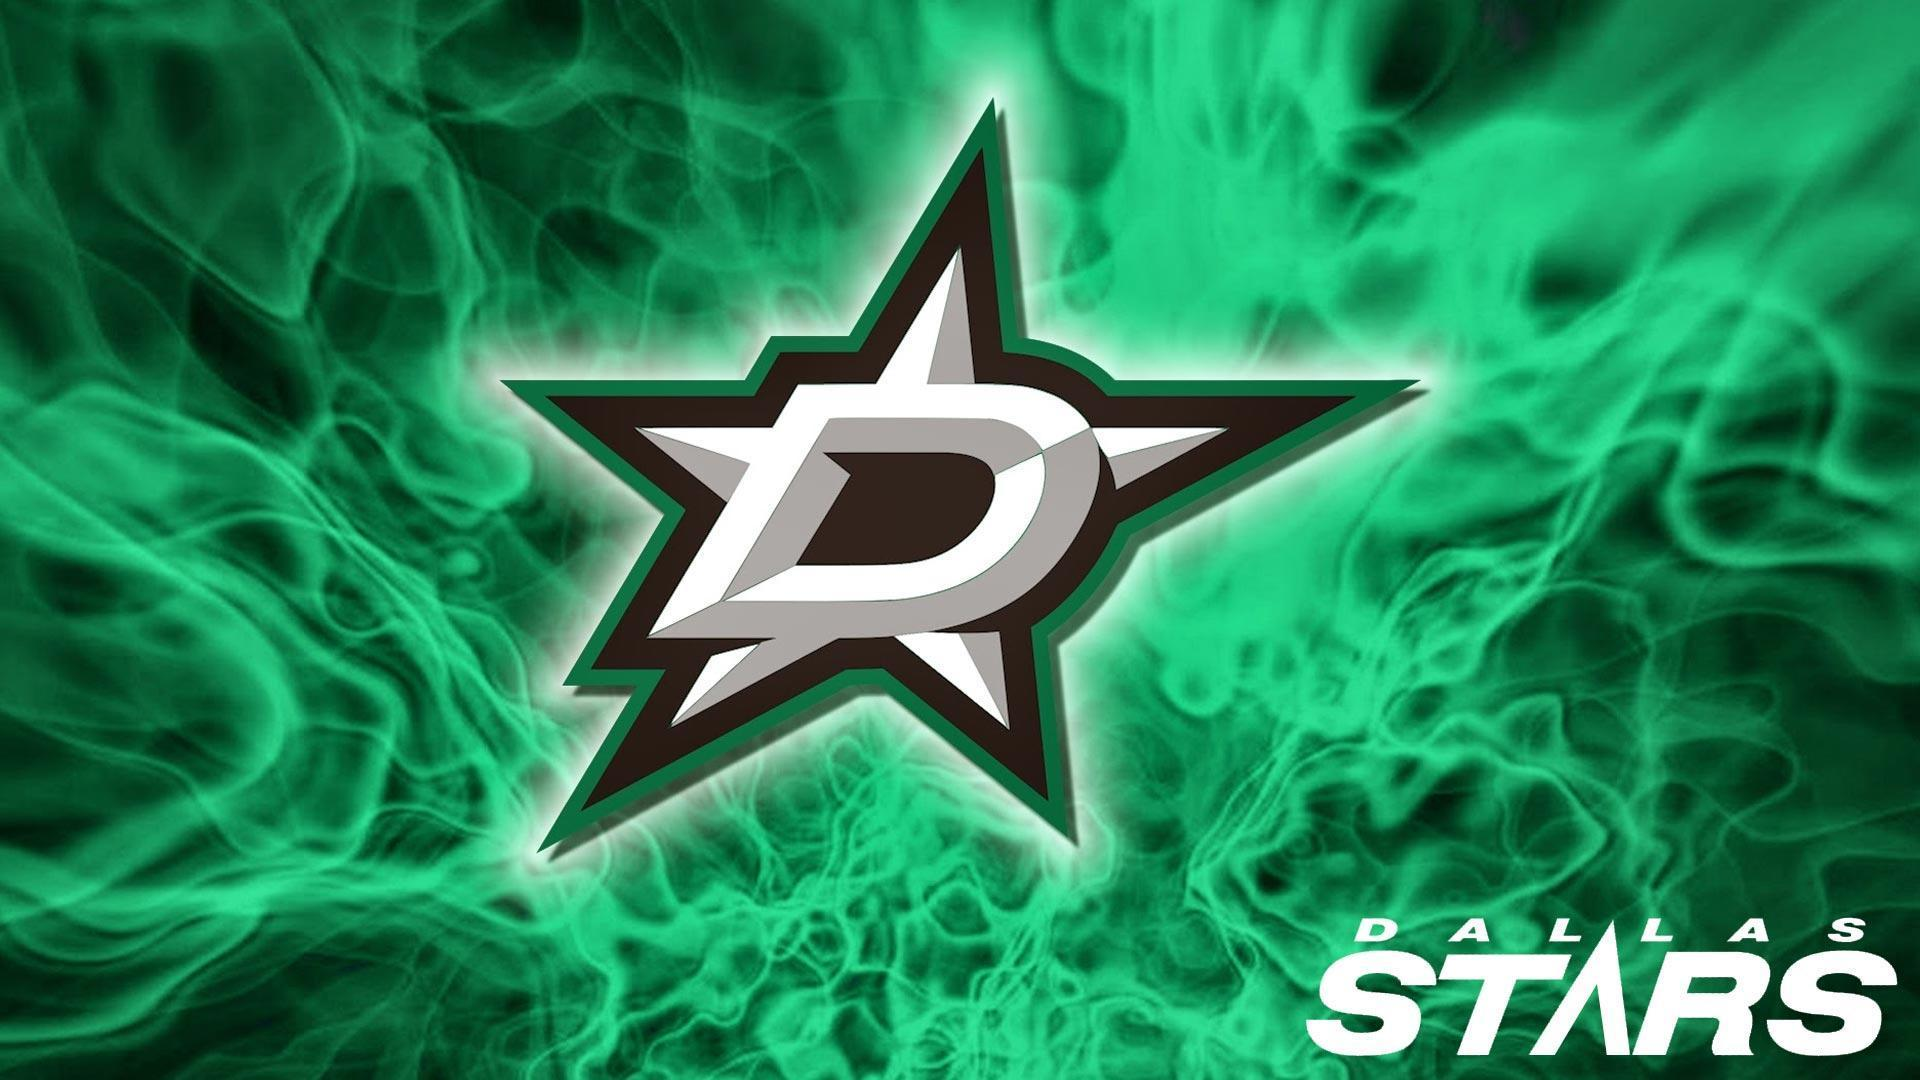 Free Download Dallas Stars Backgrounds – Wallpapercraft